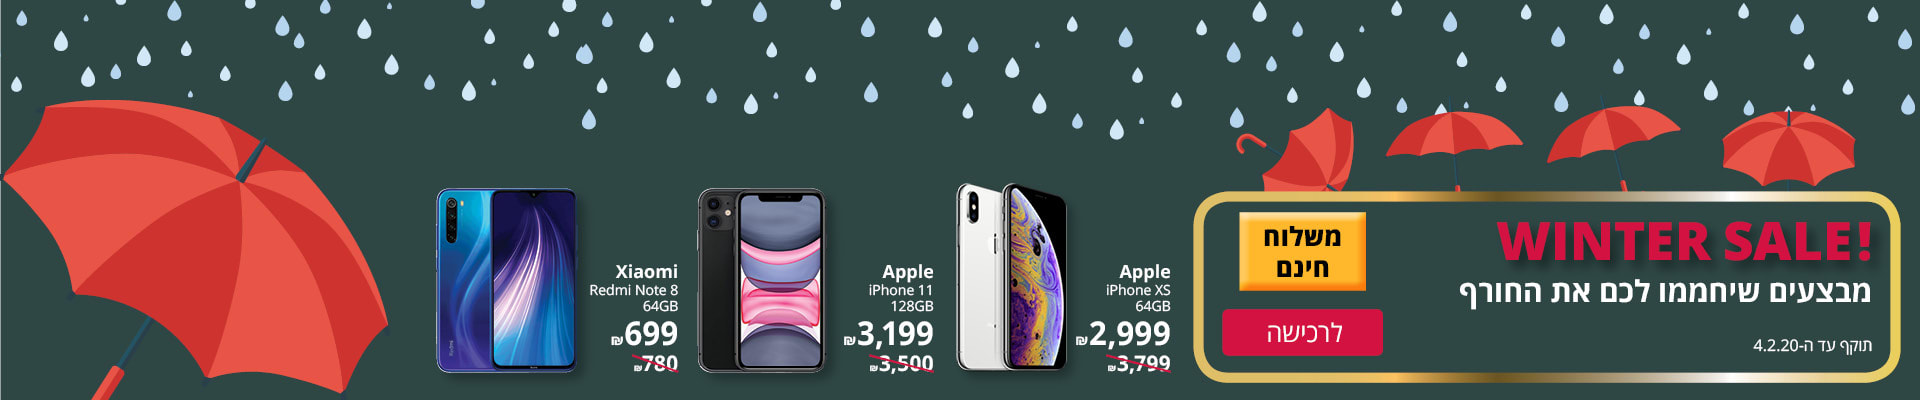 WINTER SALE! IPHONE XS 65GB ב-2999 ₪, IPHONE11 128GB ב-3199 ₪, XIAOMI NOTE 8 64 GB ב-699 ₪. בתוקף עד ה-4.2.20